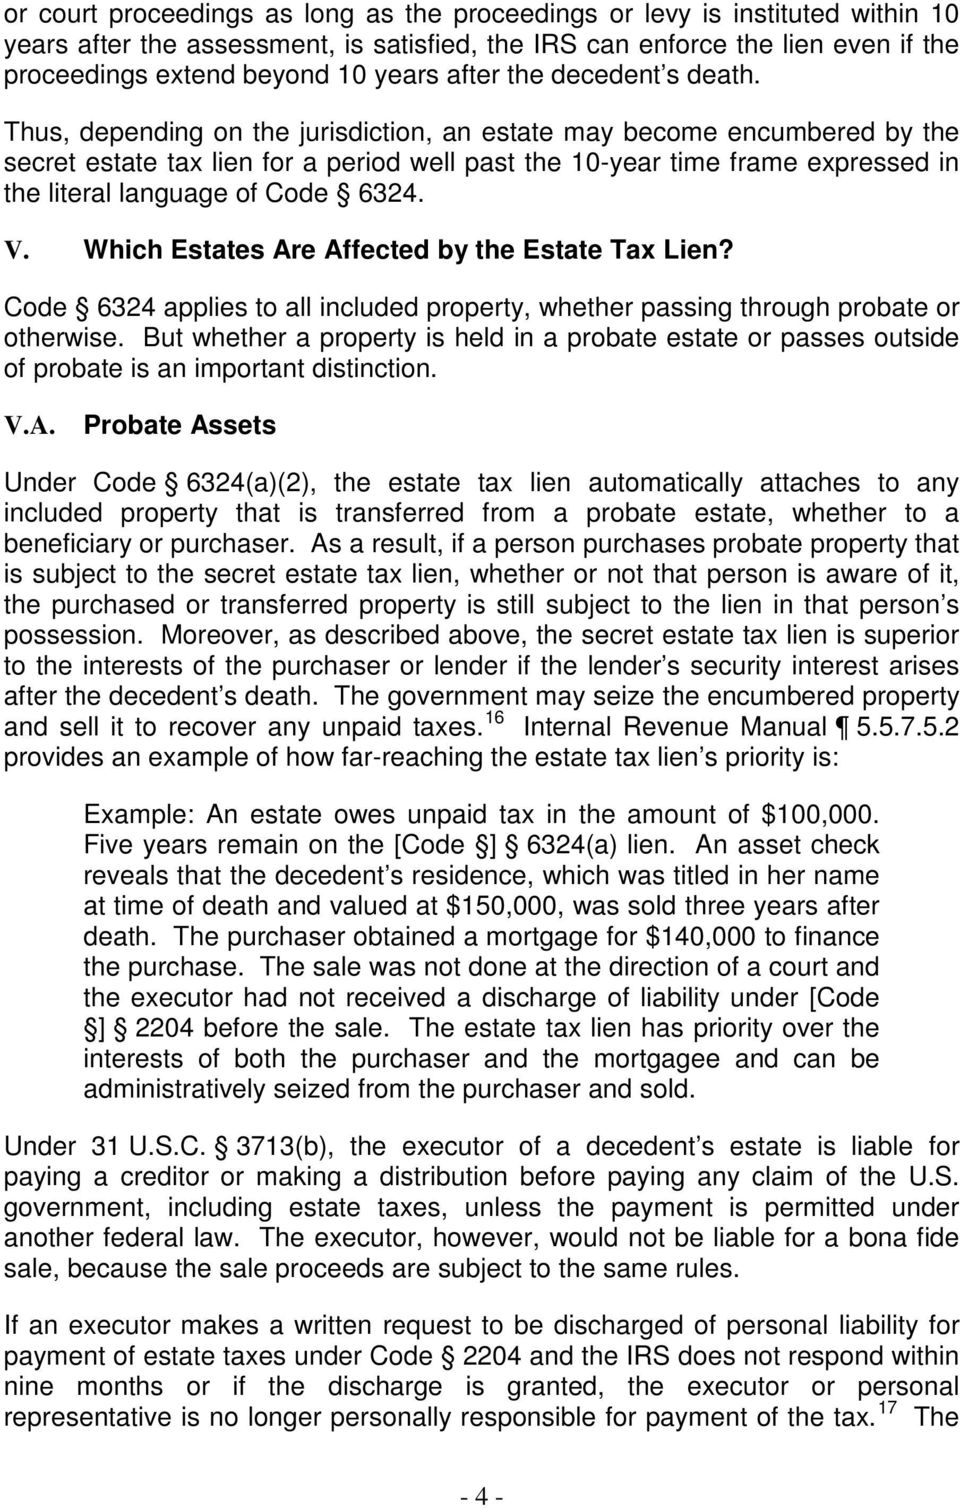 Thus, depending on the jurisdiction, an estate may become encumbered by the secret estate tax lien for a period well past the 10-year time frame expressed in the literal language of Code 6324. V.